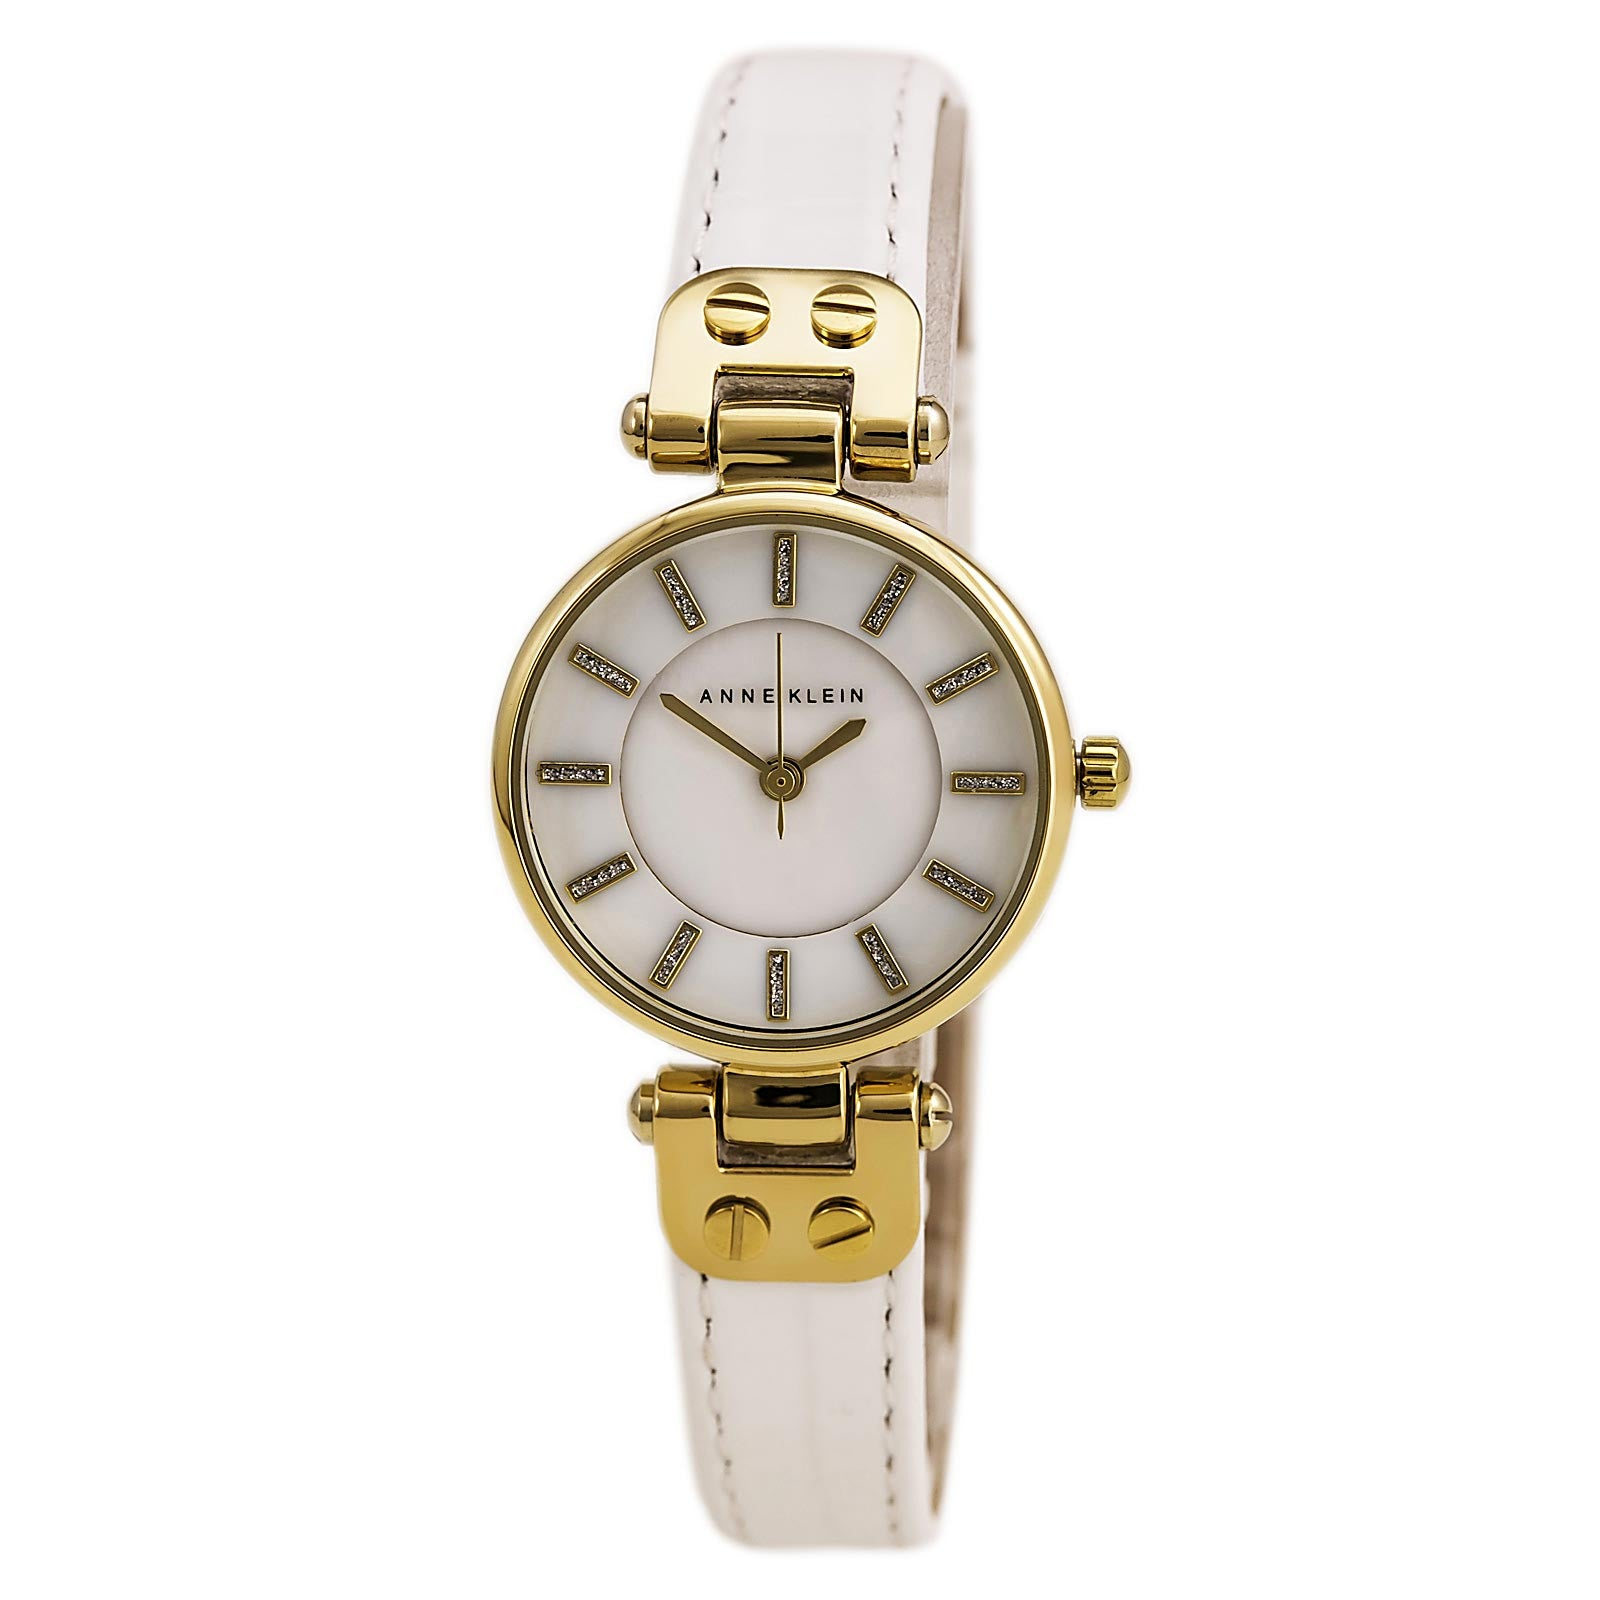 Anne Klein 1950MPWT Women's Mother of Pearl Dial White Leather Strap Watch